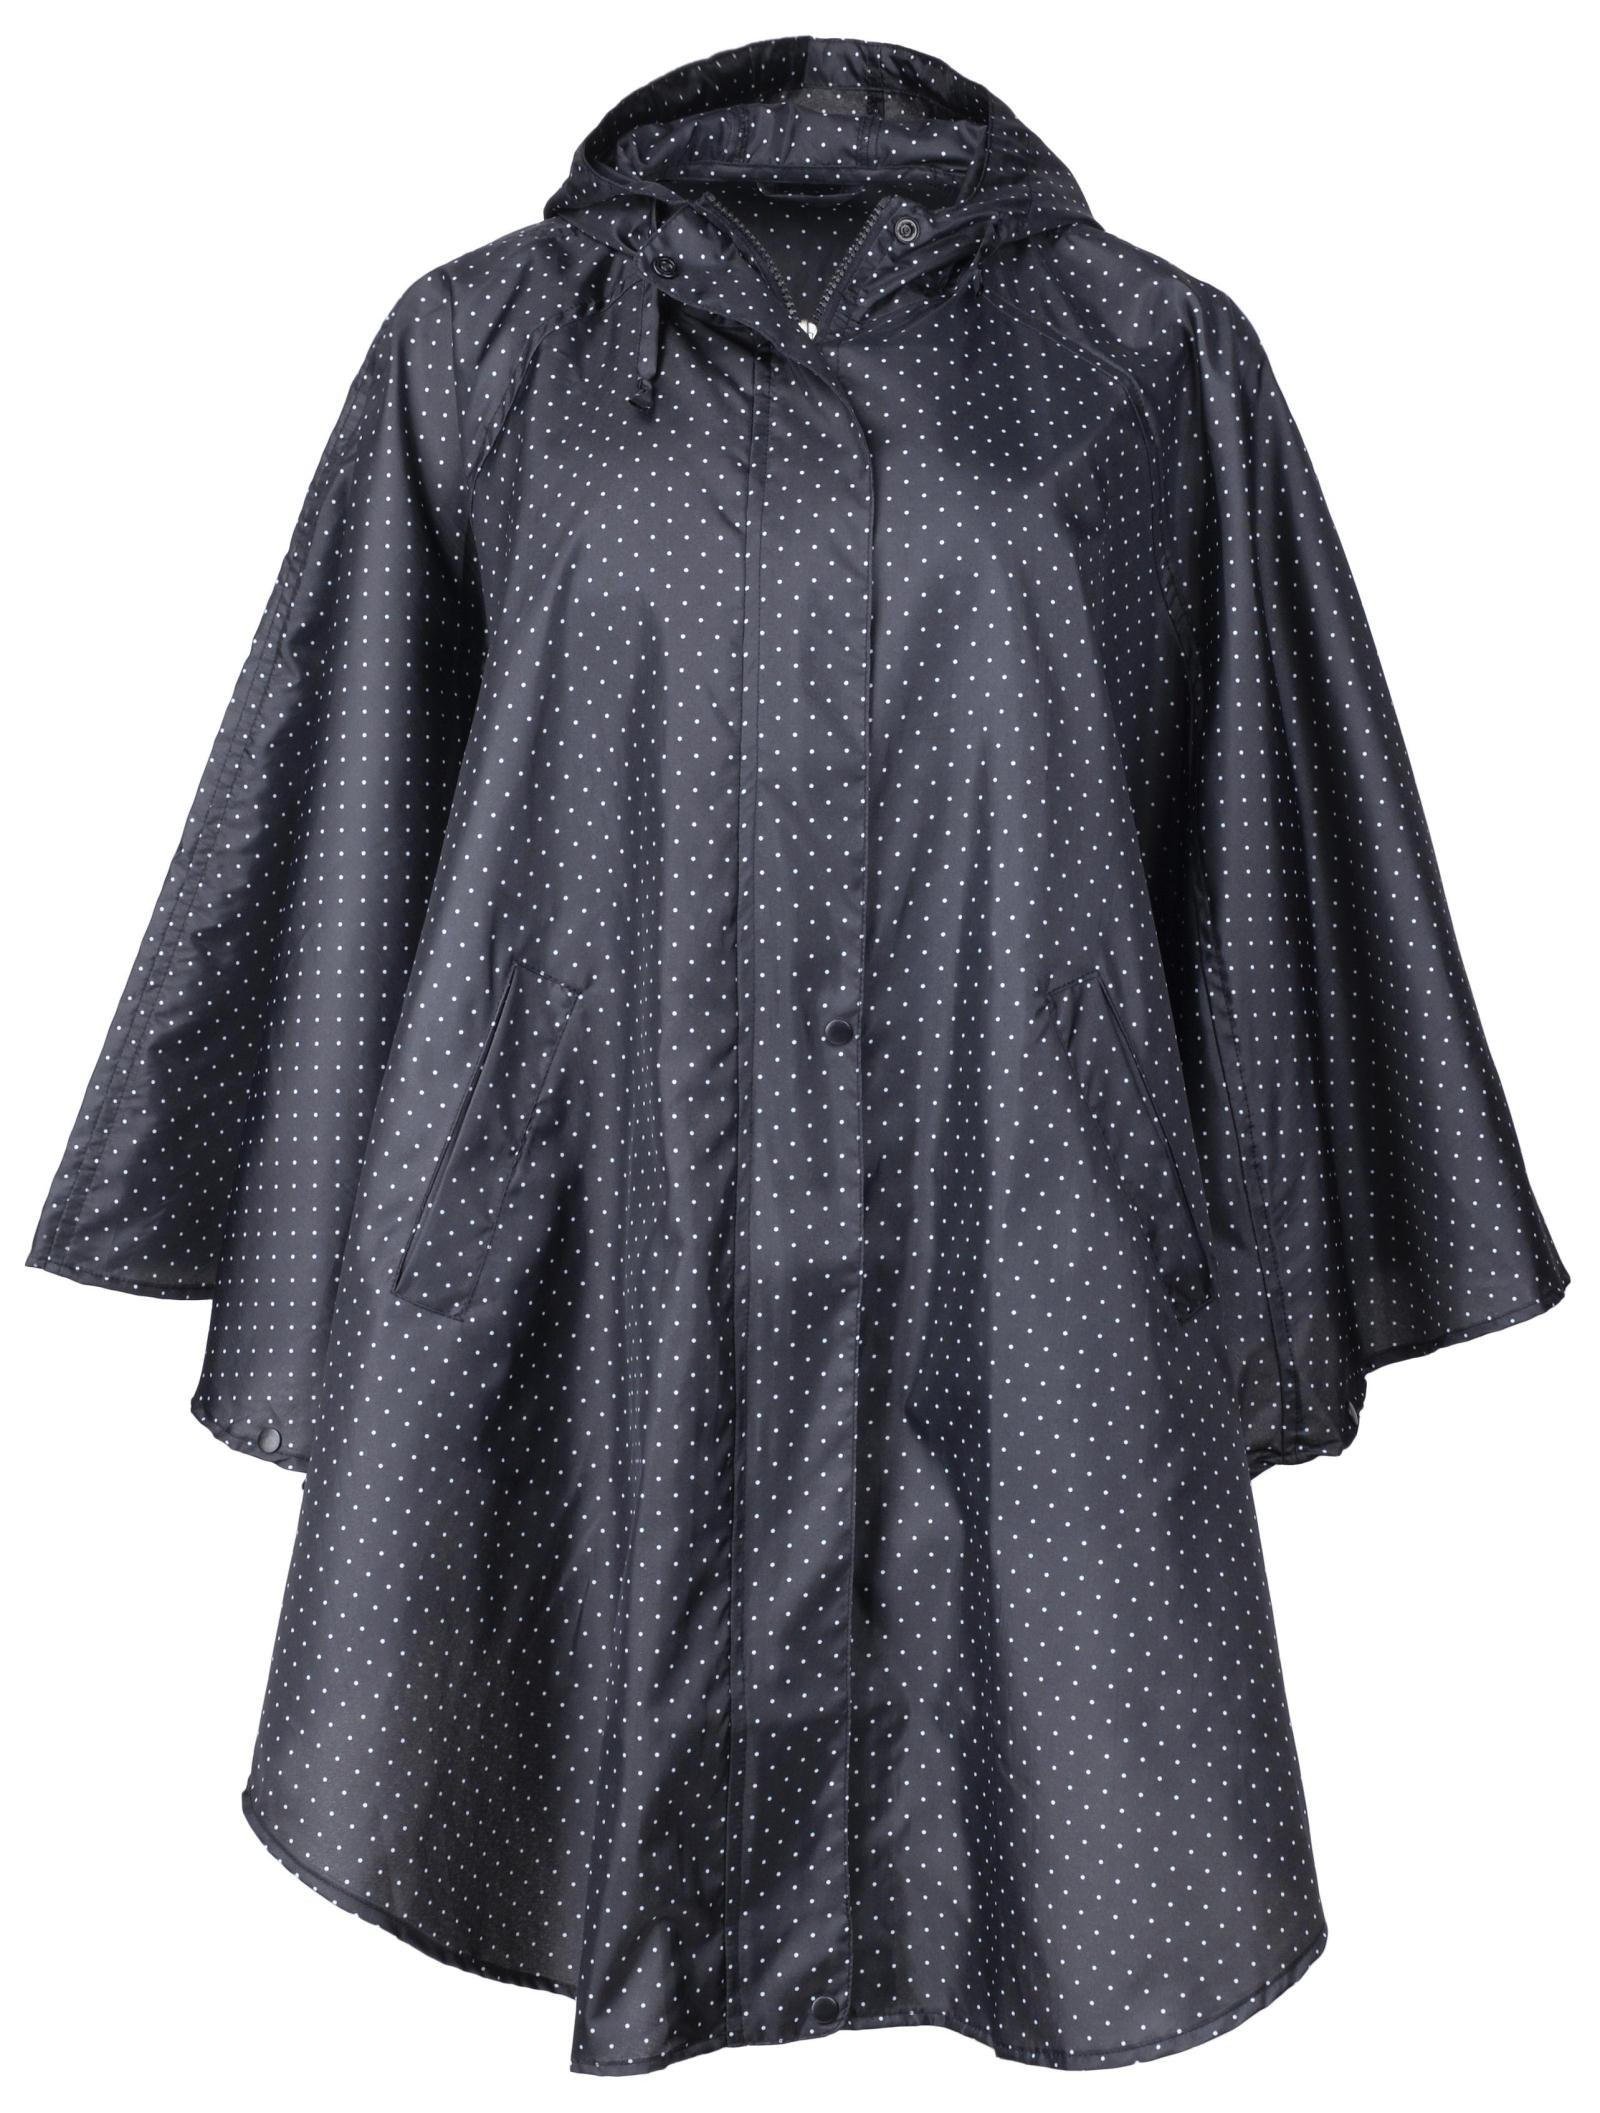 QZUnique Women's Waterproof Packable Rain Jacket Batwing-Sleeved Poncho Raincoat Black Spots